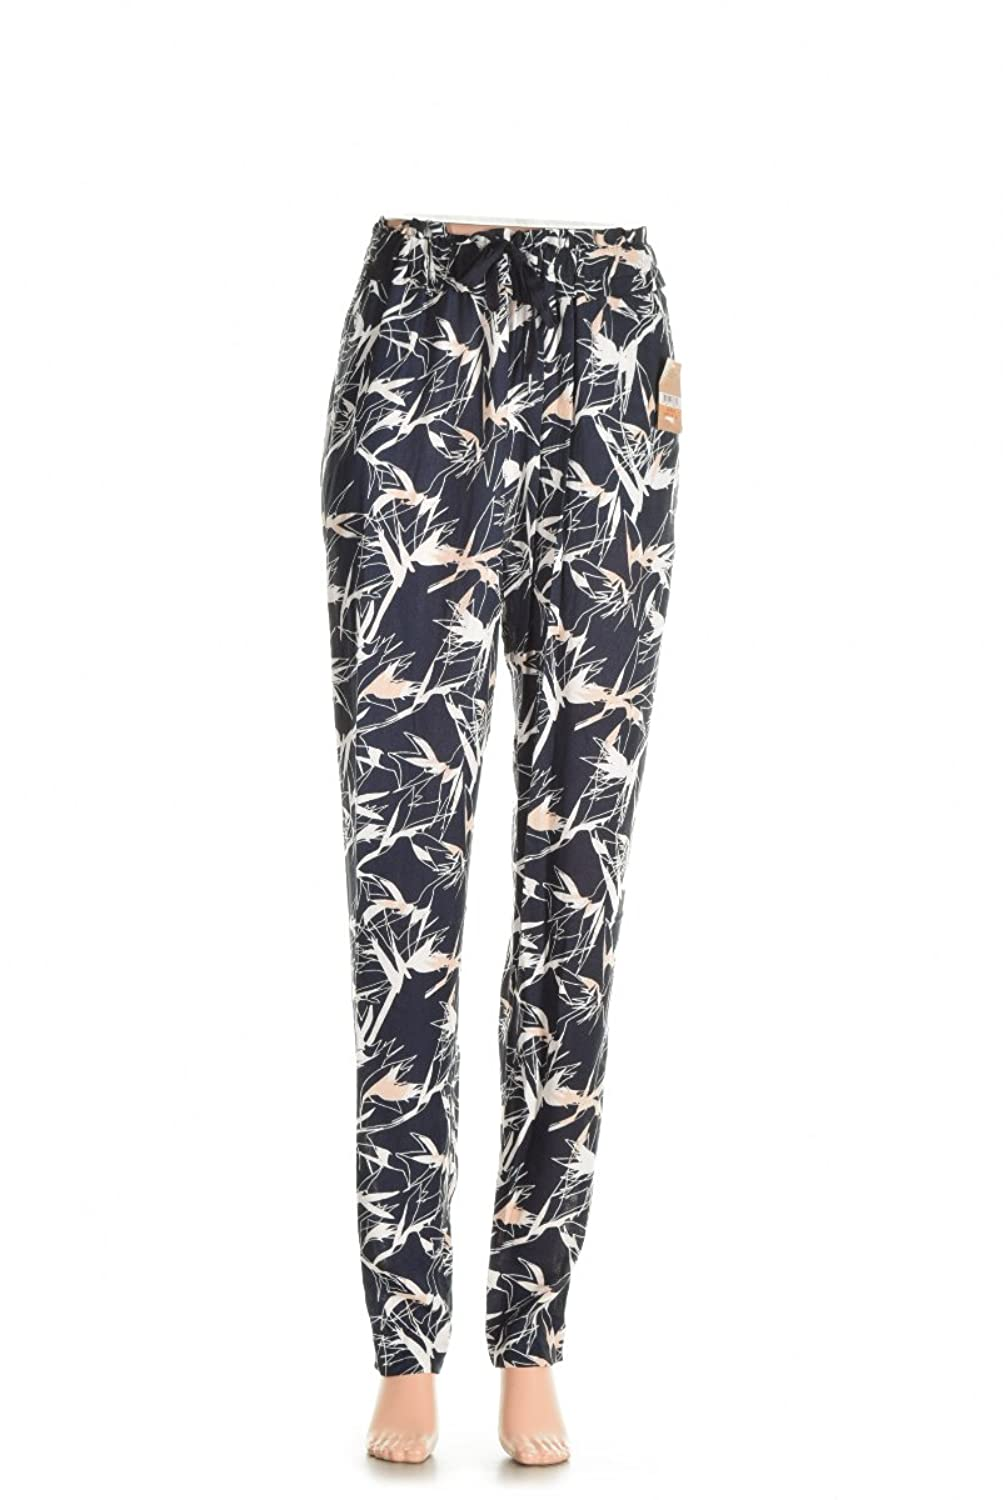 Rachel Rachel Roy Womens Crepe Printed Casual Pants